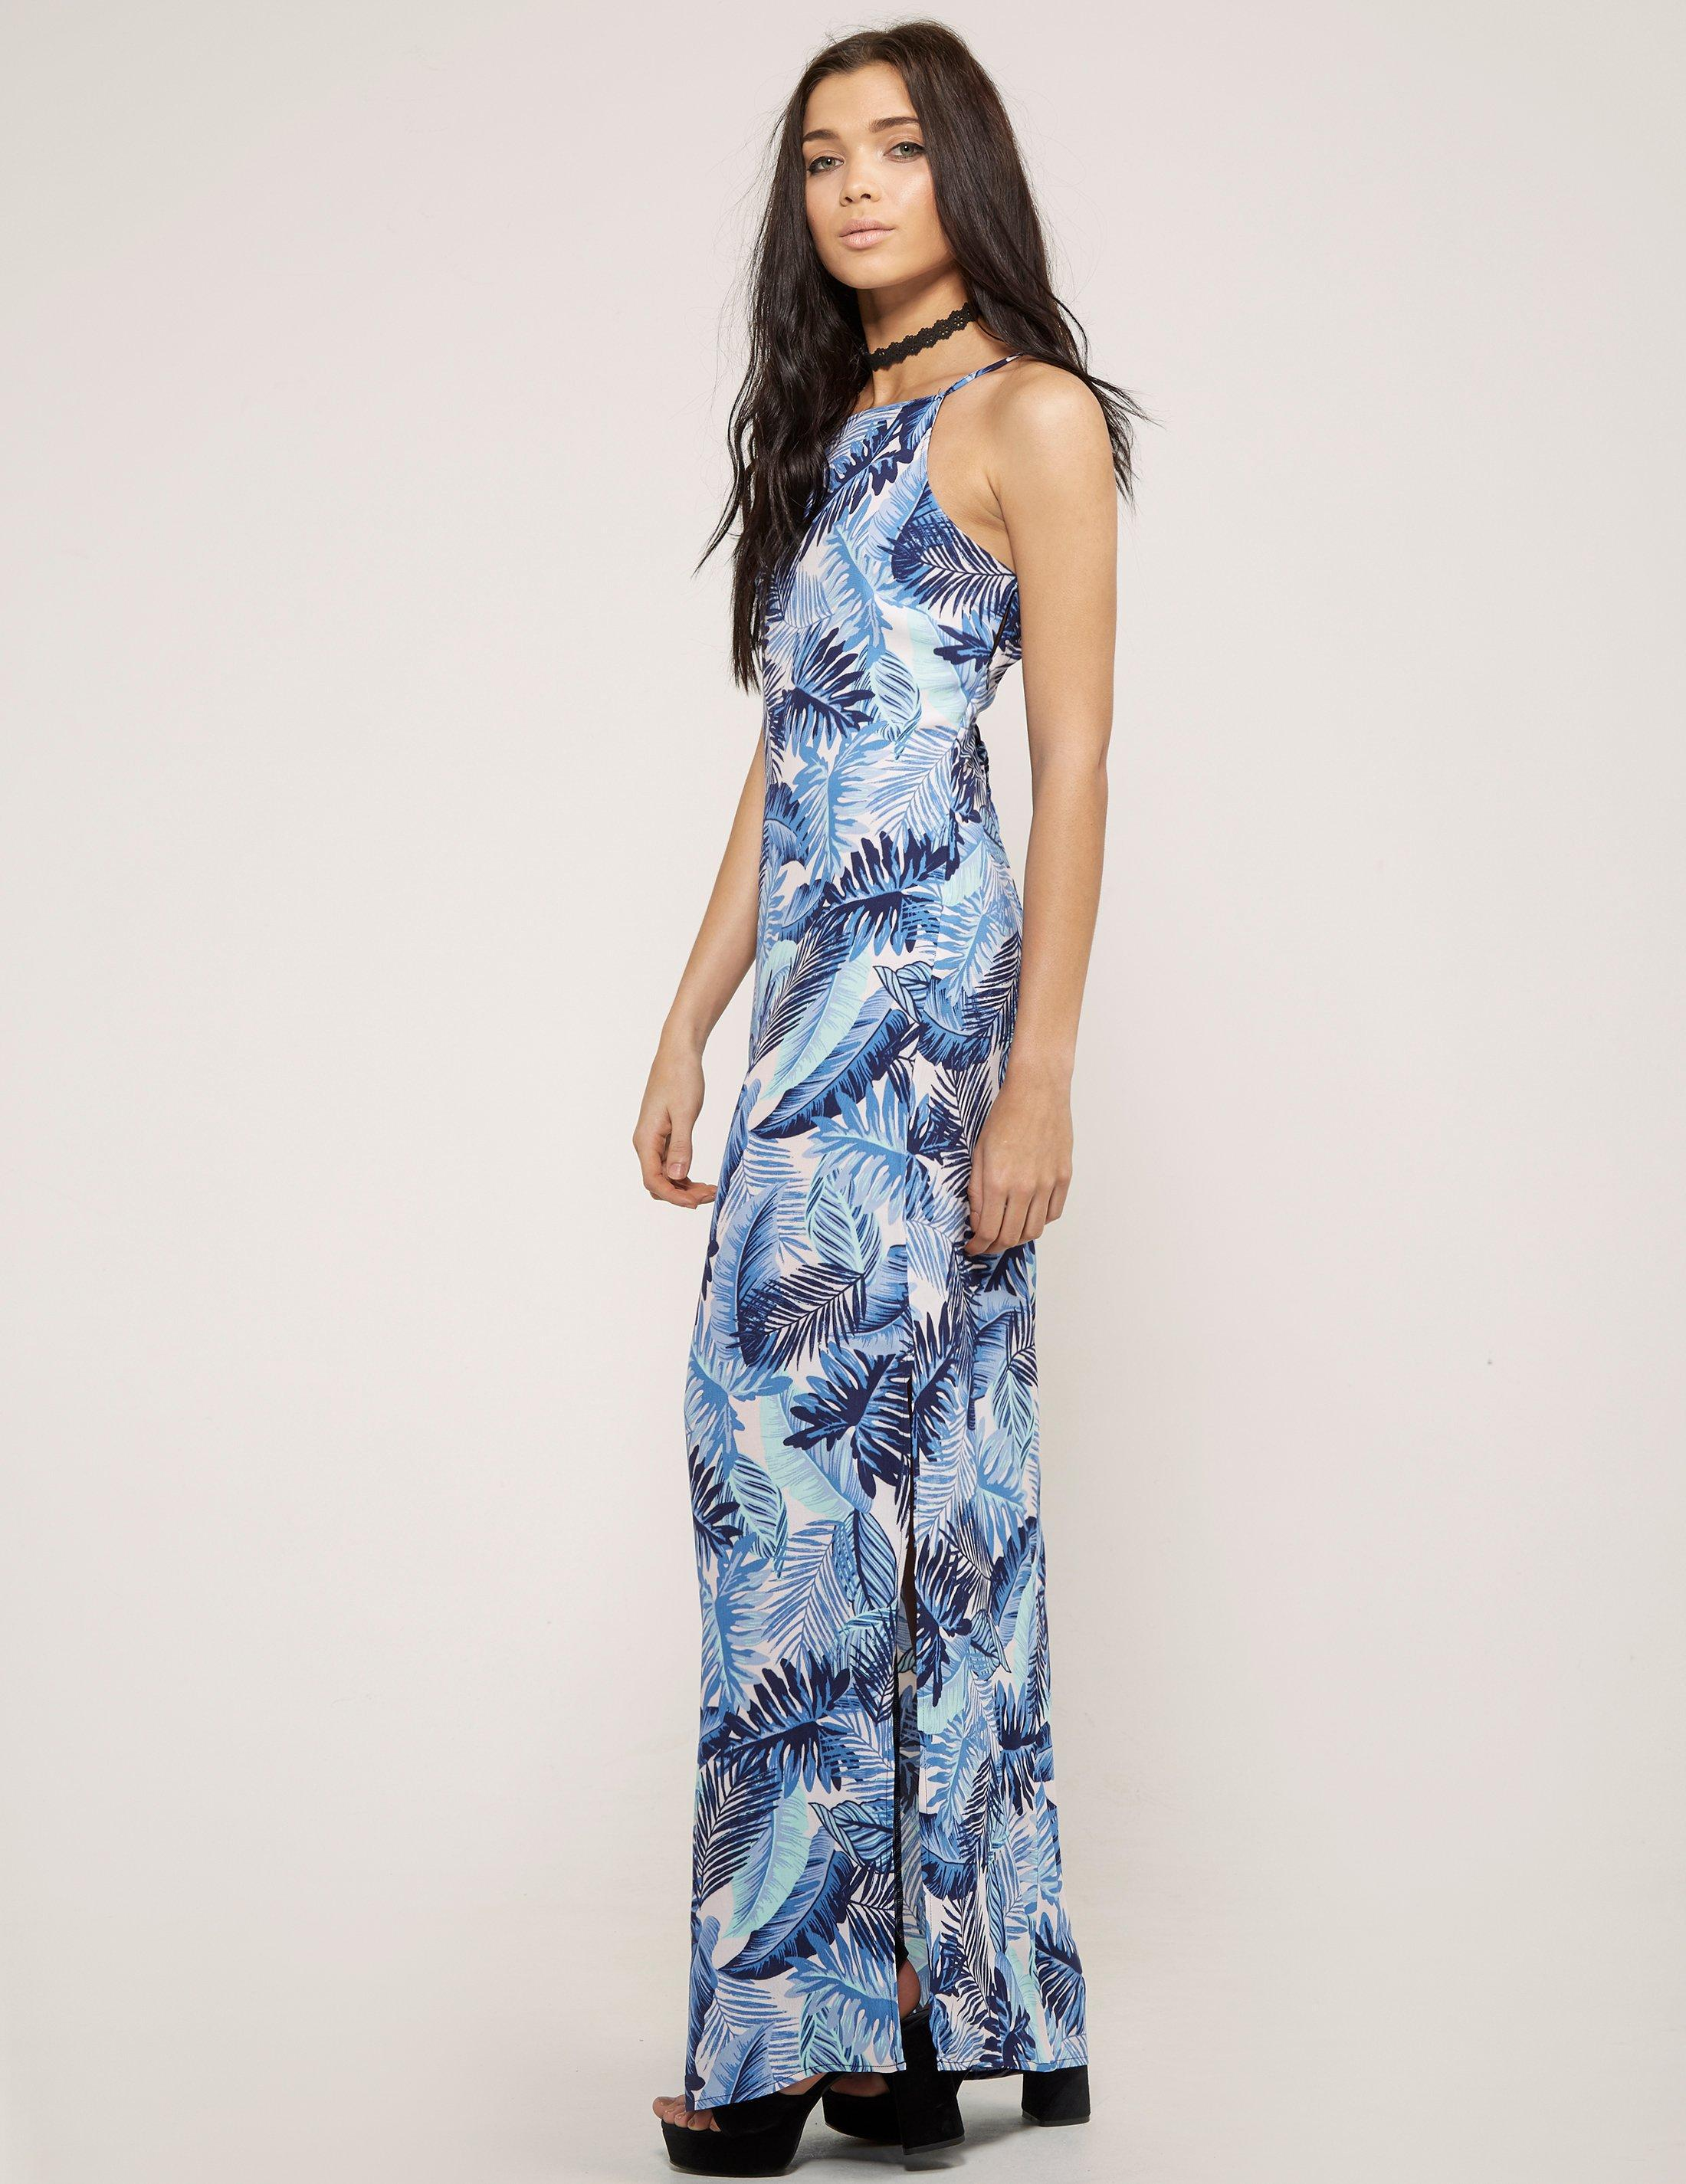 83e7f540ba Lyst - Juicy Couture Palm Leaves Maxi Dress in Blue